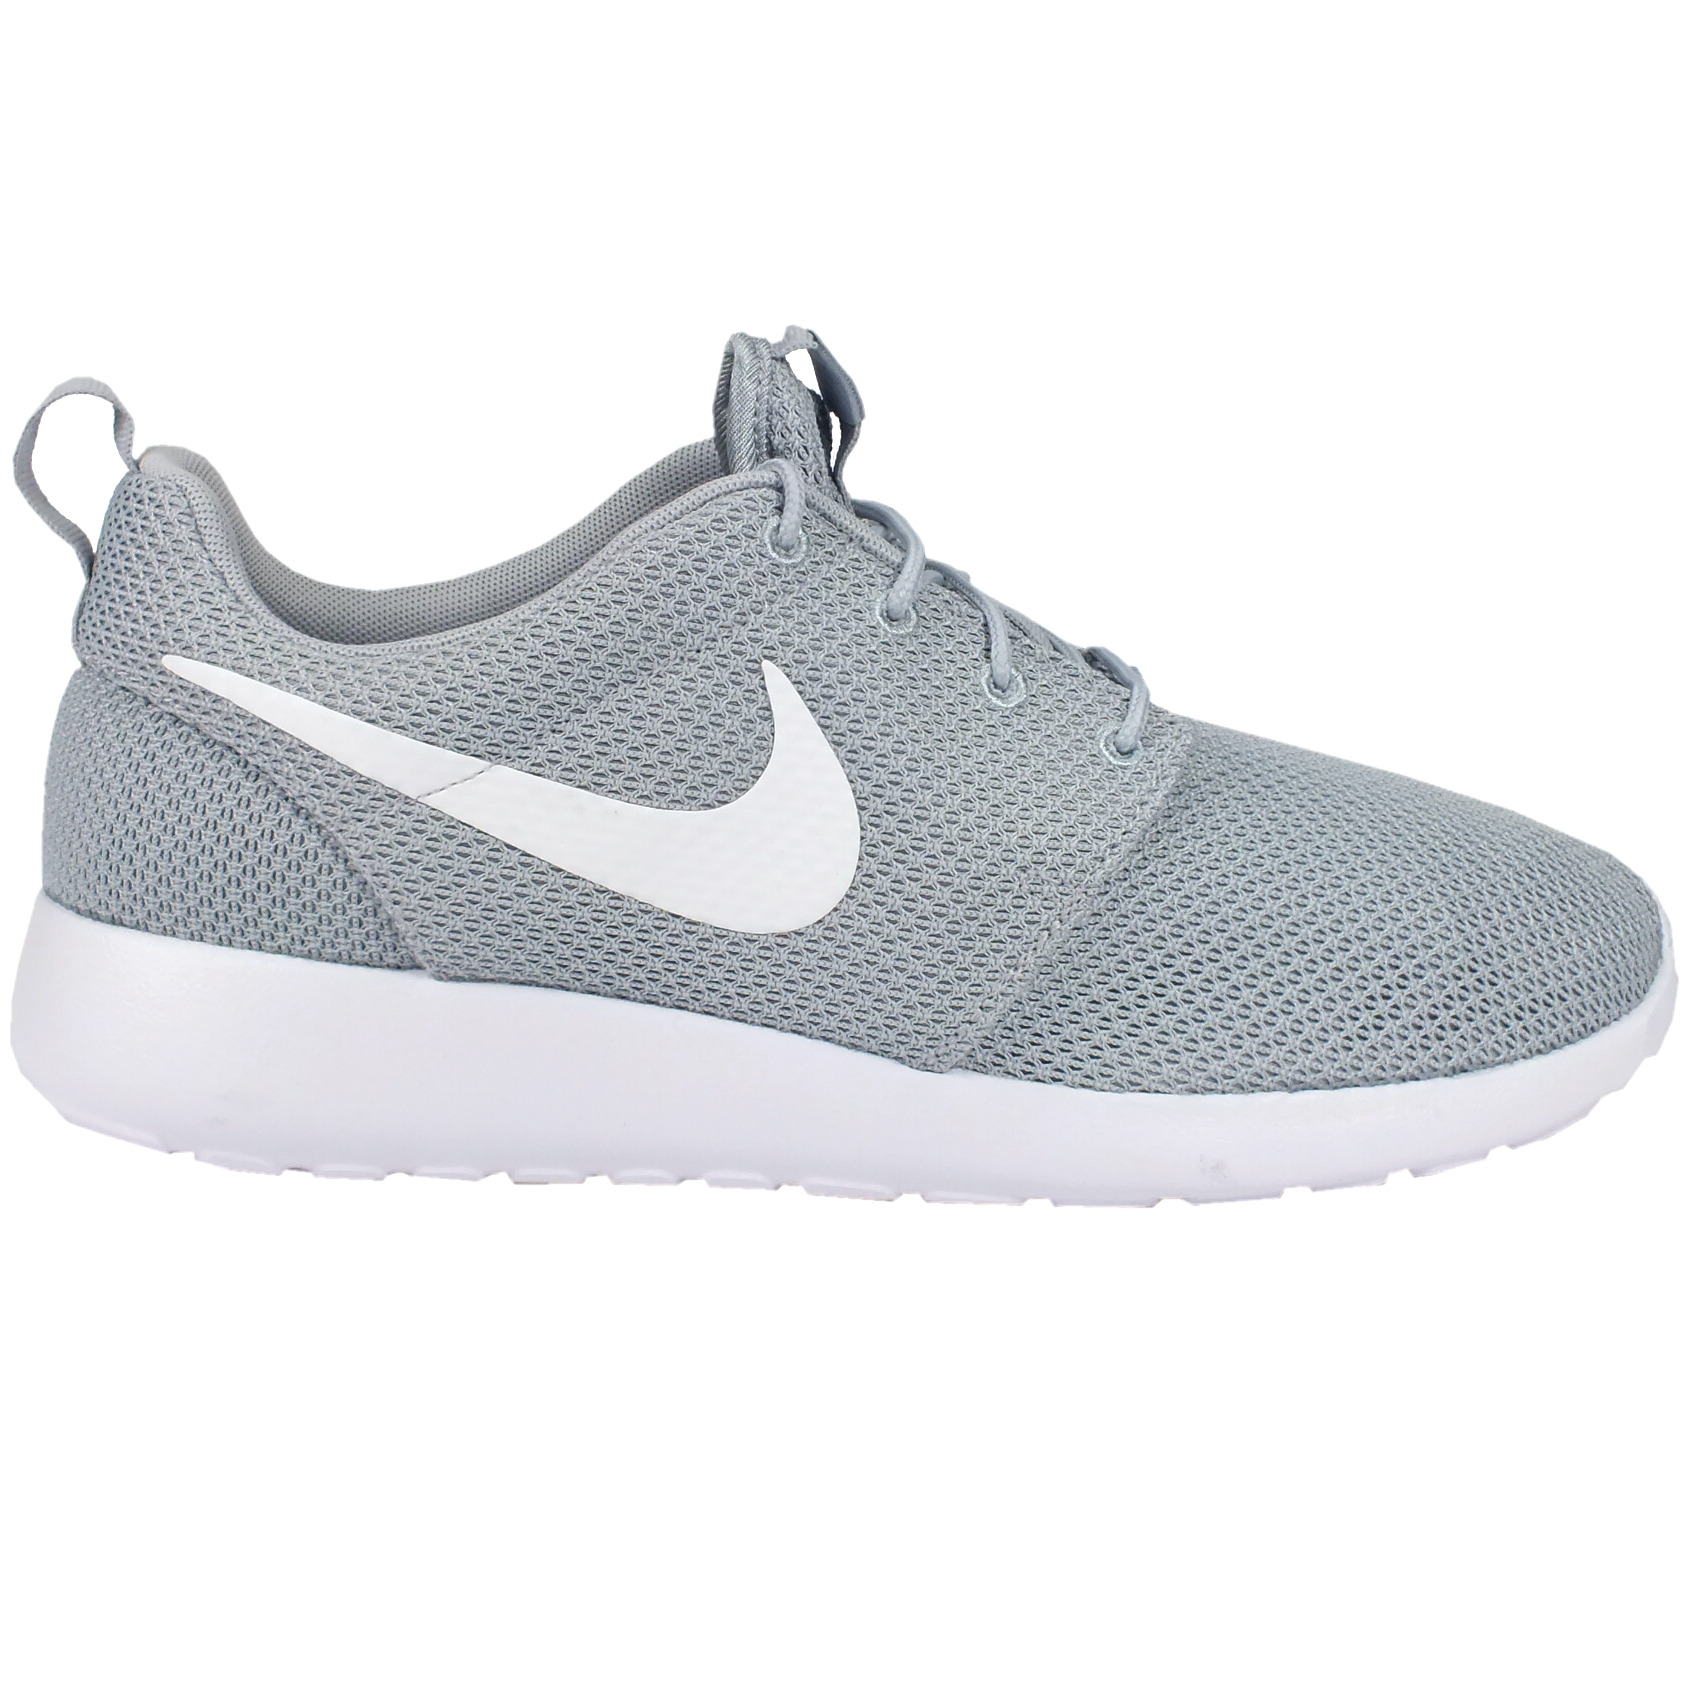 Nike Roshe One Shoes Trainers Run rosherun | eBay